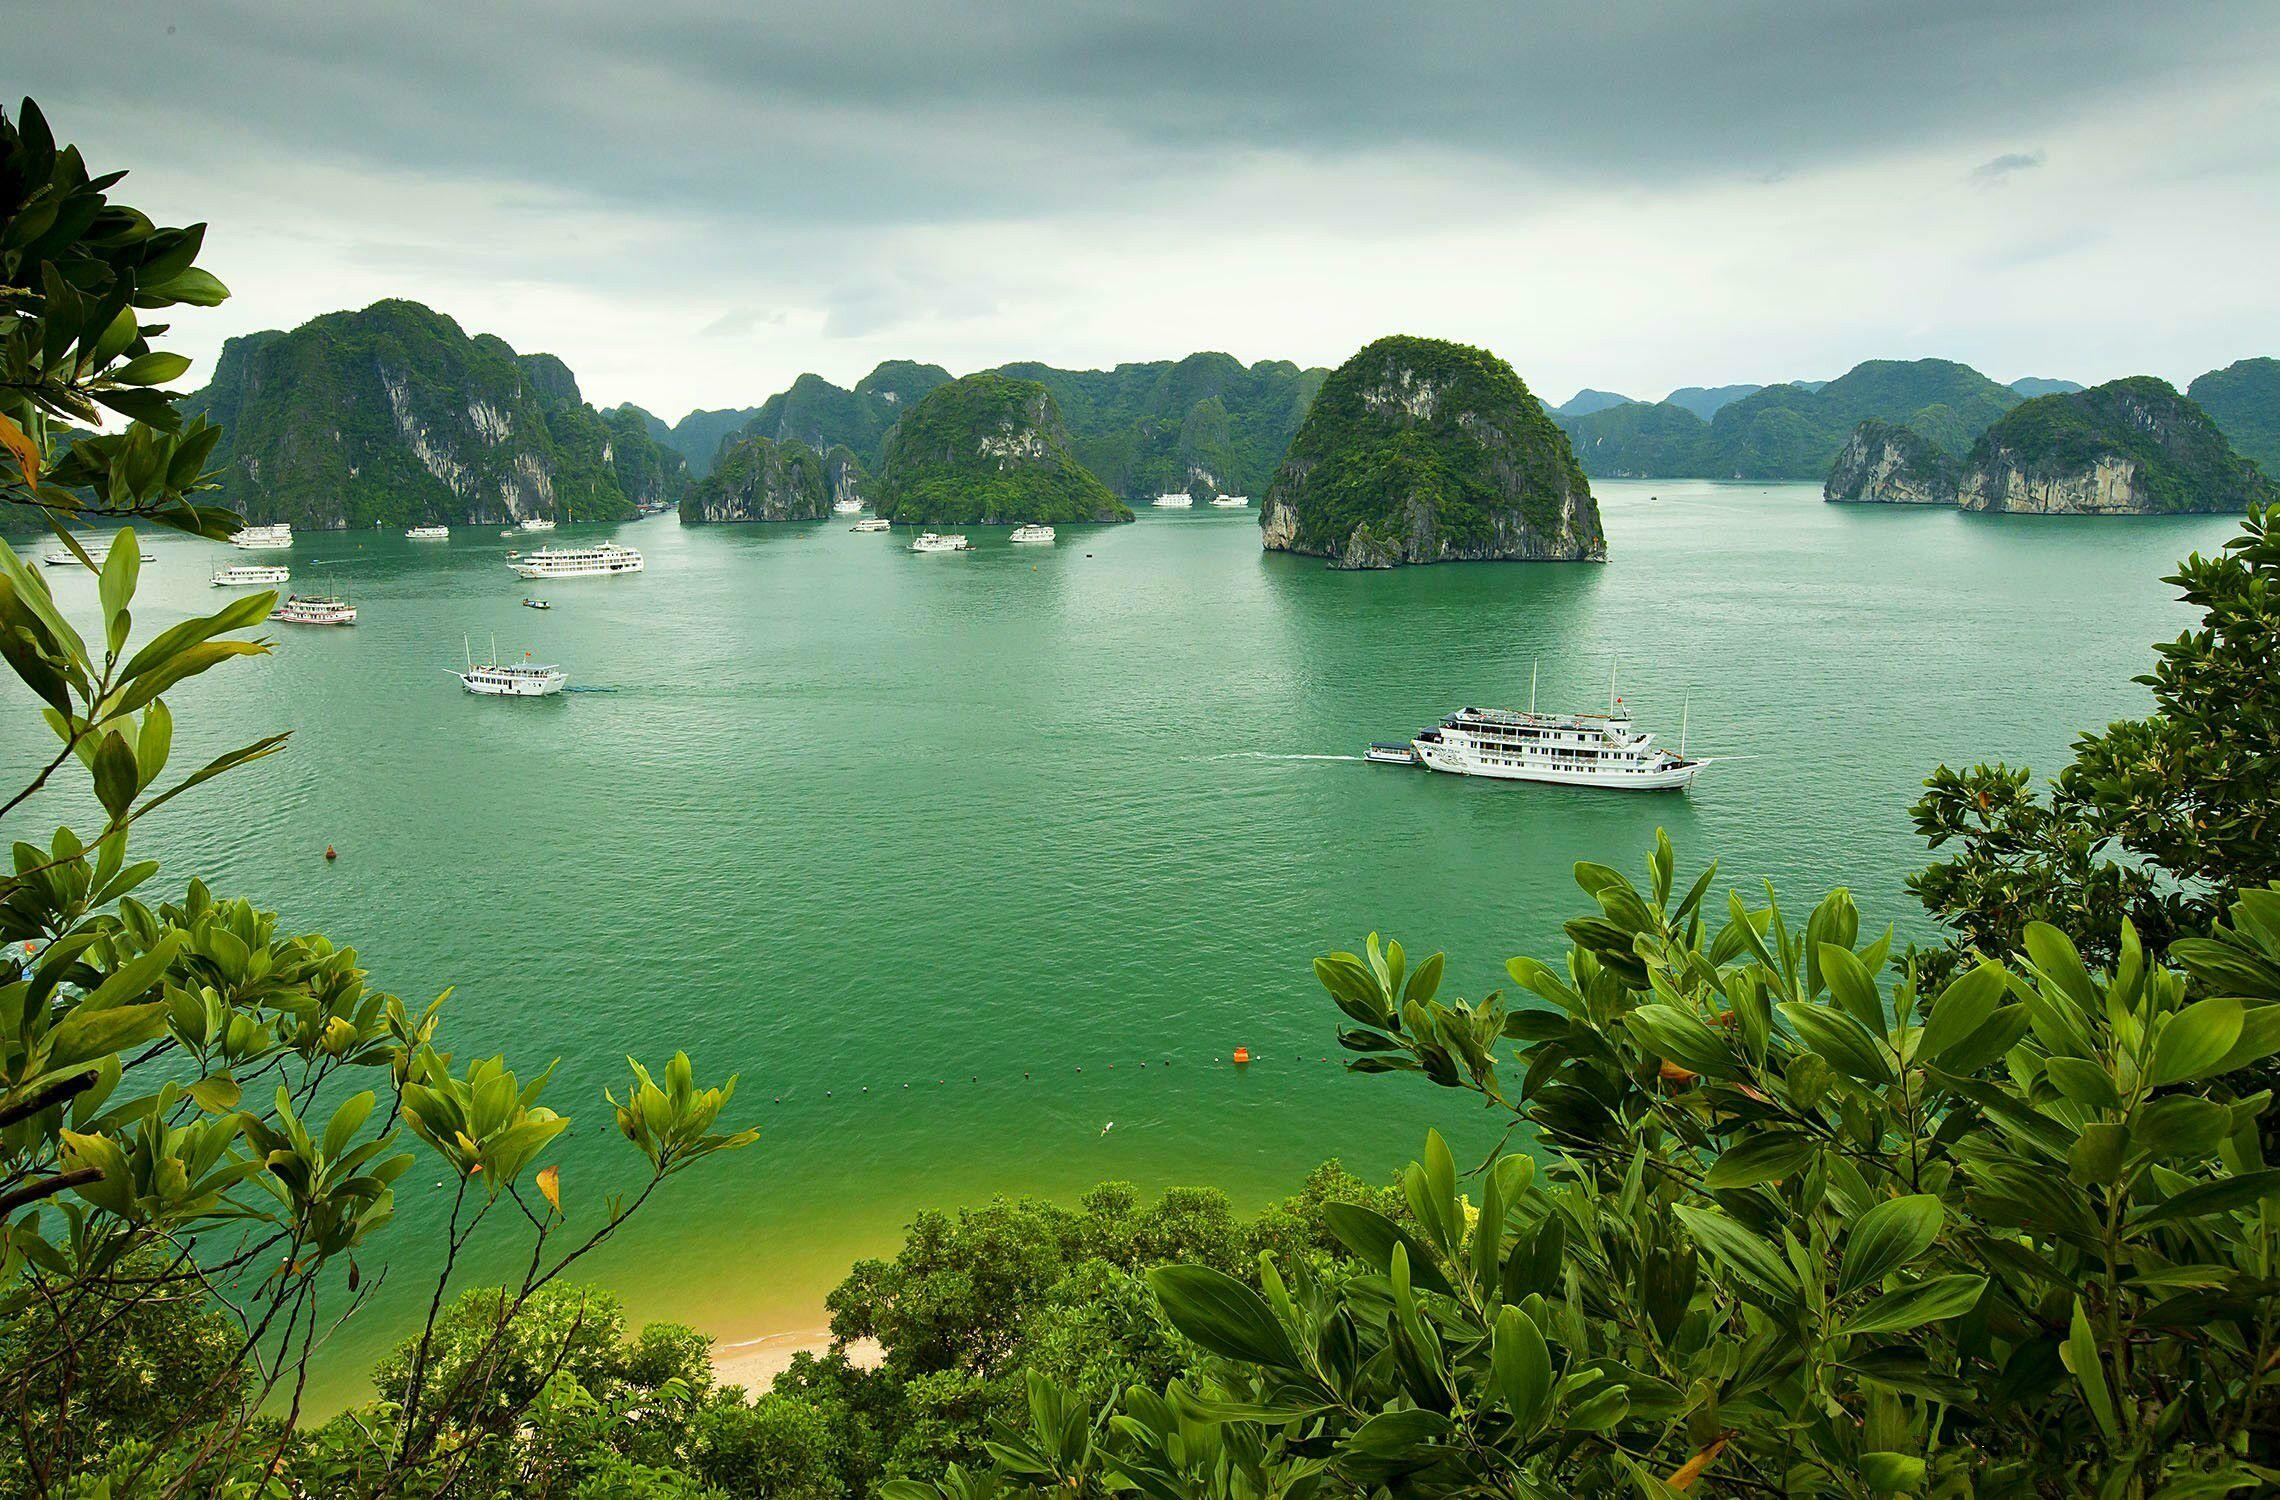 2280x1500 Halong Bay Vietnam Island Ship Boat Background Pictures wallpaper thumb